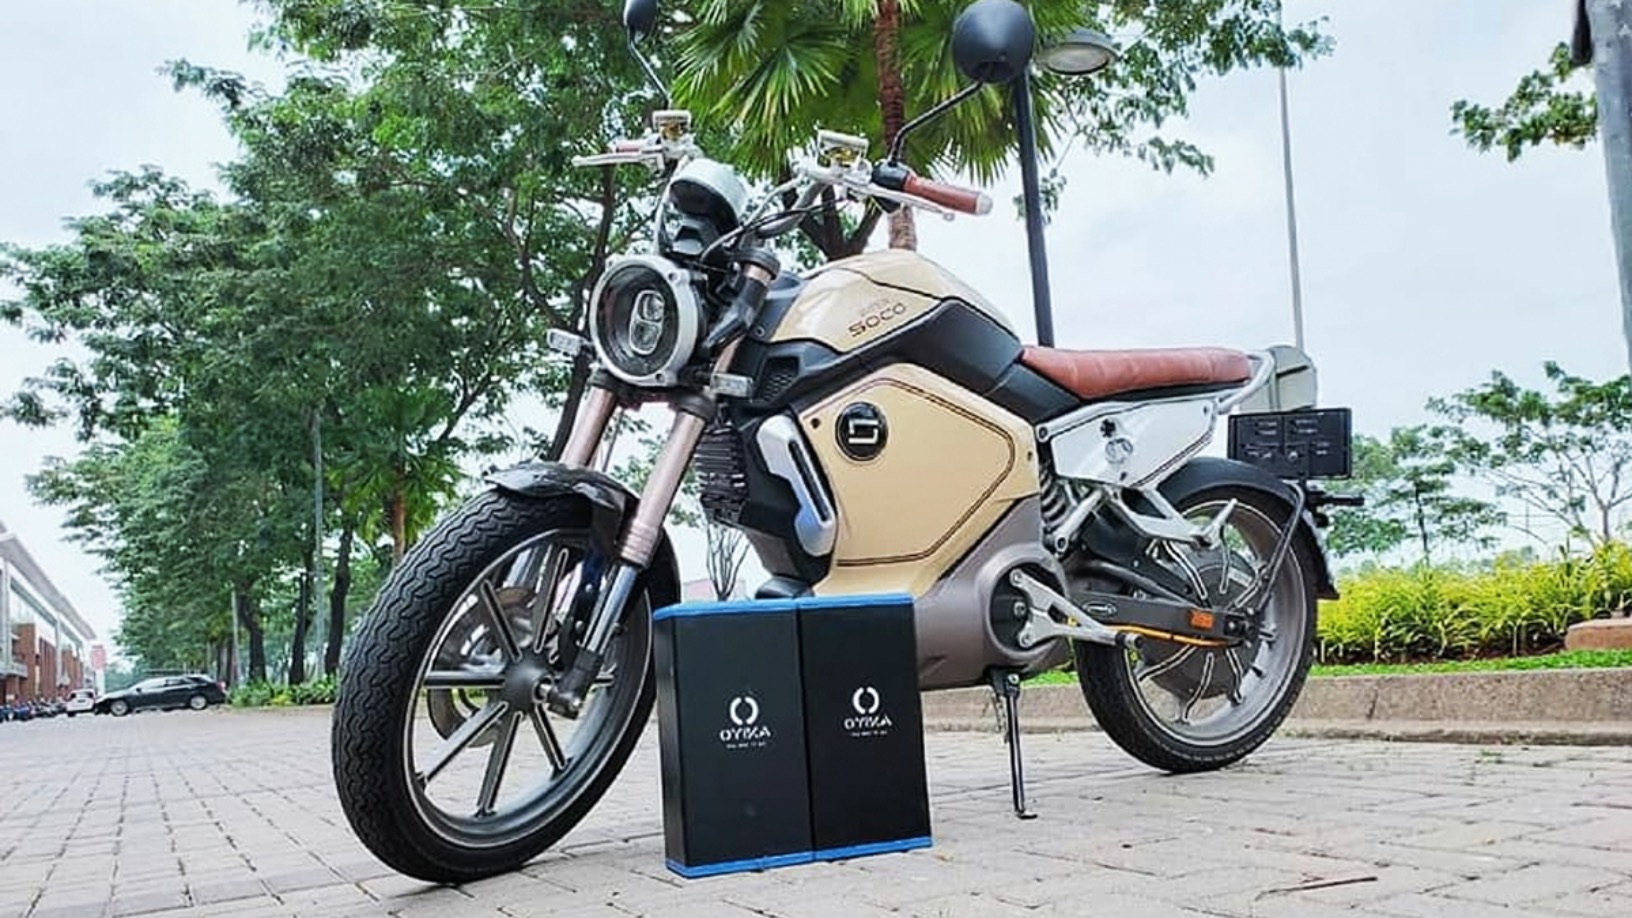 Oyika wants to help 30,000 Indonesian riders switch to electric motorcycles